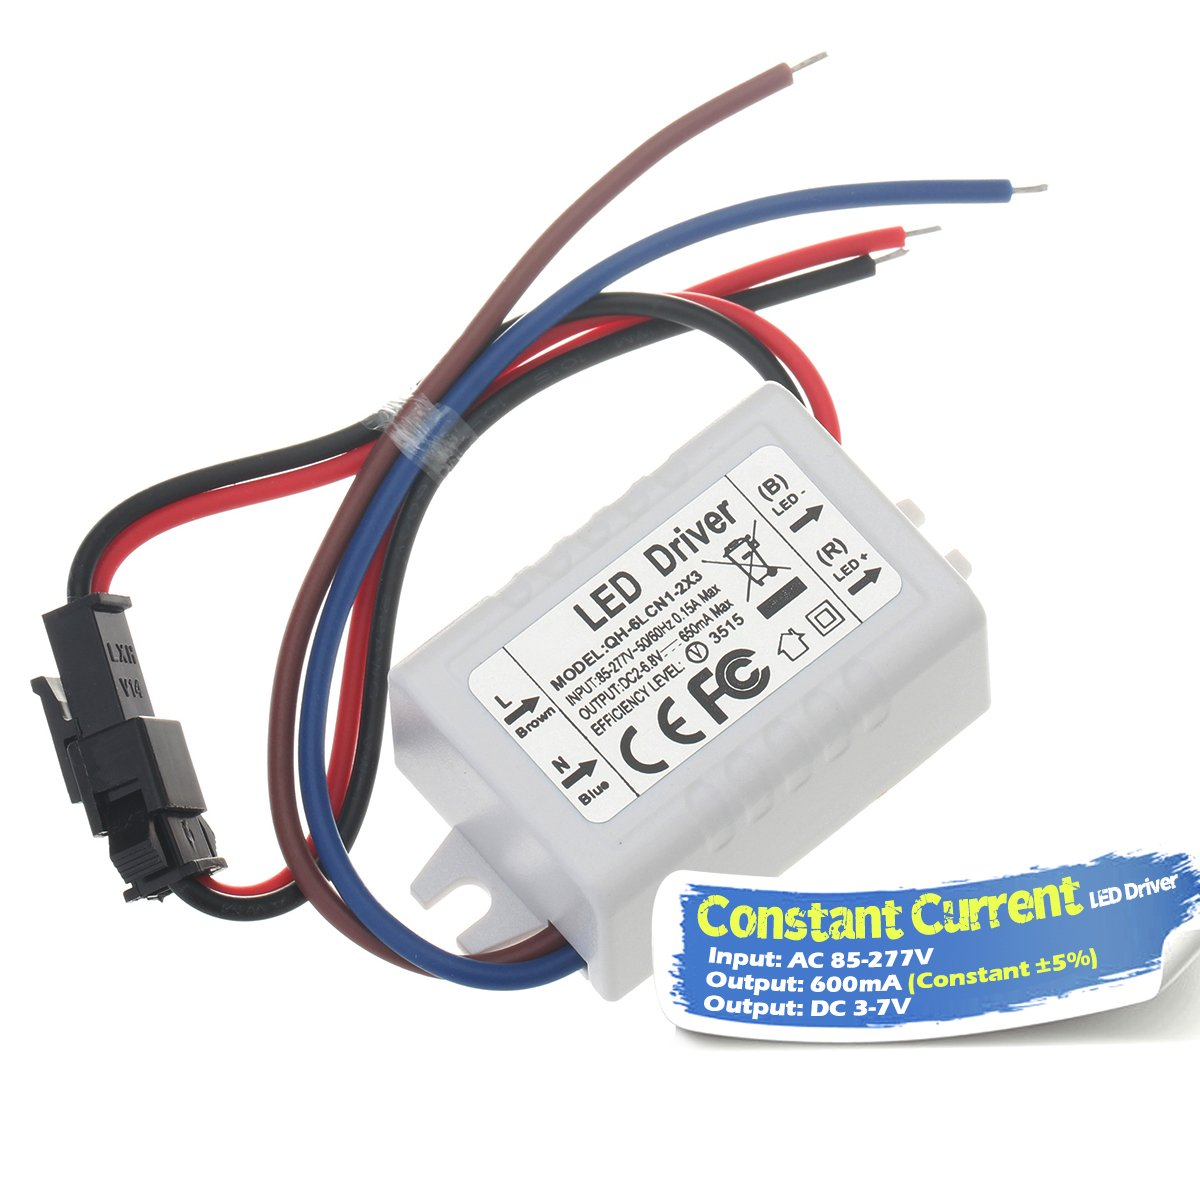 Chanzon Led Driver 600ma Constant Current Output 3v 7v Input 85 Together With 10 Watt Circuit On High 277v Ac Dc 1 2 X3w 3w 6w Power Supply 600 Ma Lighting Transformer Drivers For